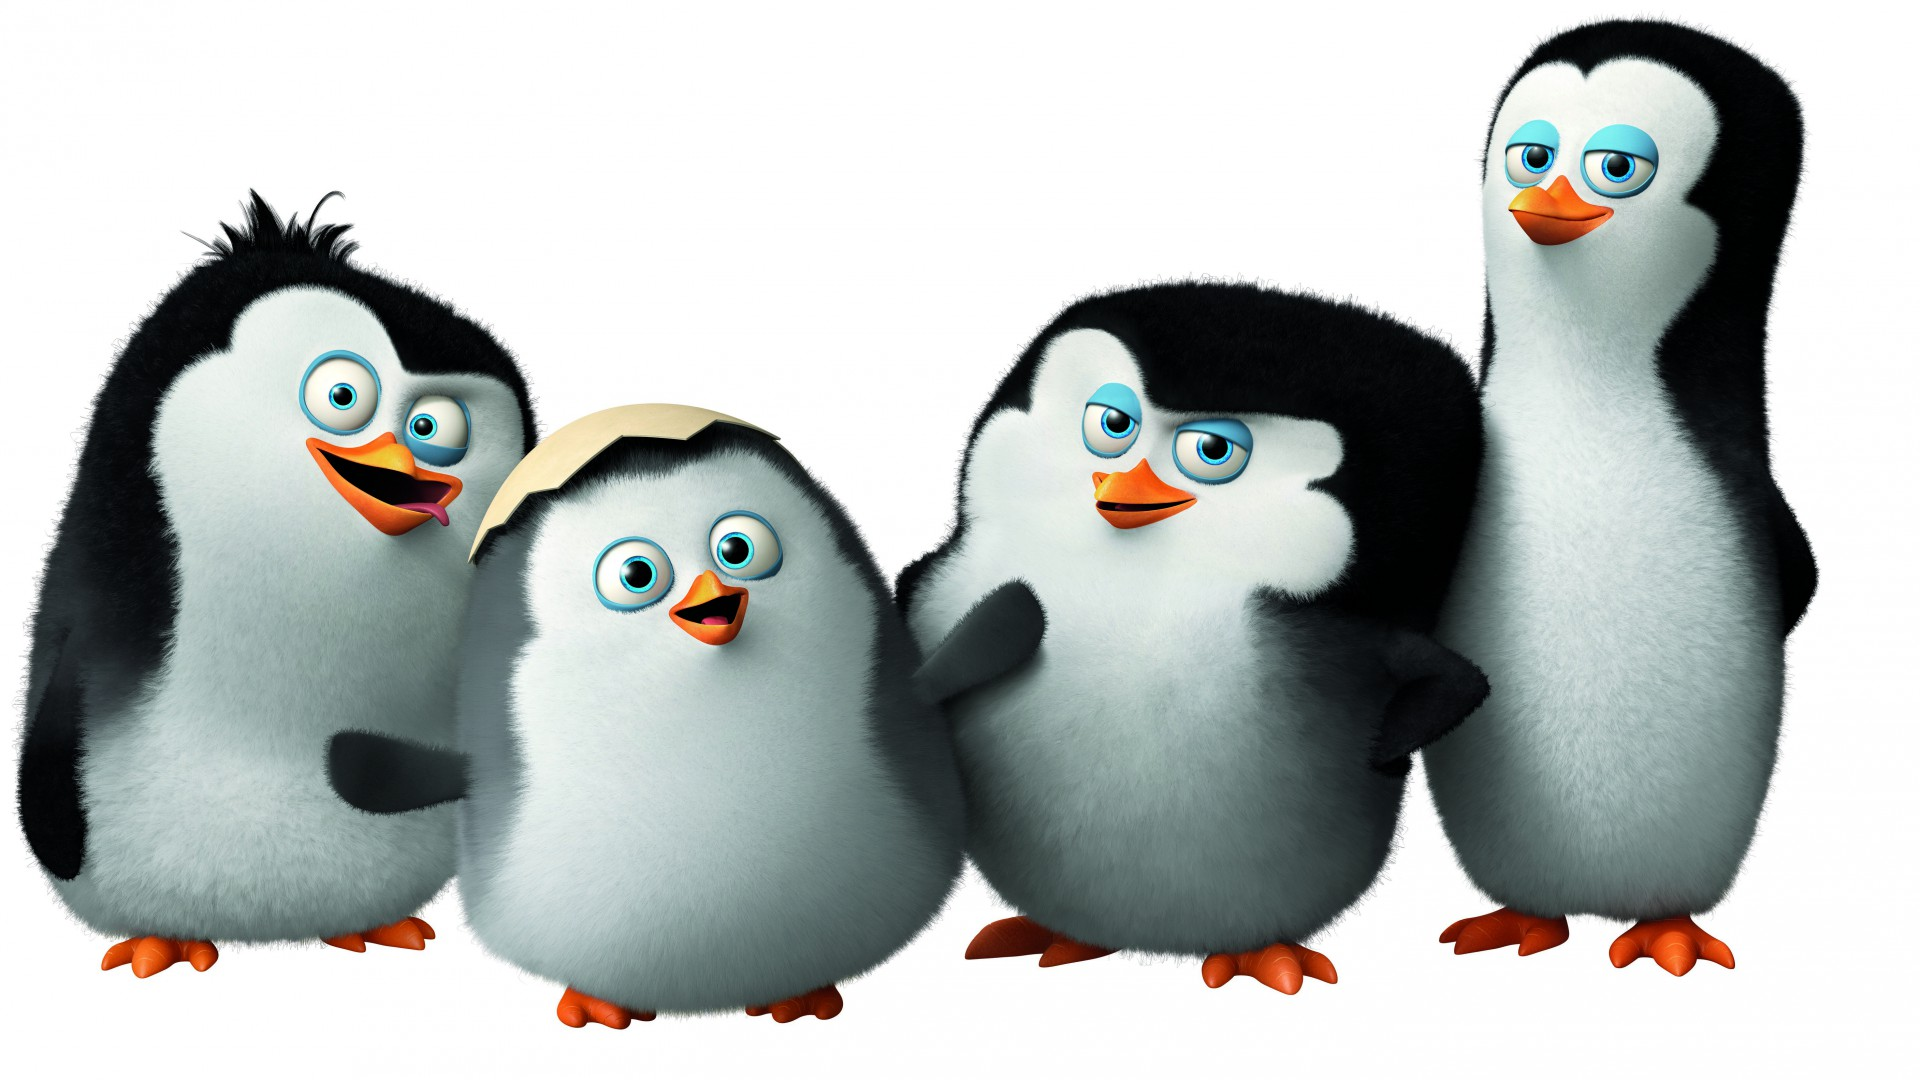 Penguins of Madagascar, cute penguin, cartoon, Madagascar, funny, Skipper, Kowalski, Rico, Private, watch, HD, Best Animation Movies of 2015 (horizontal)